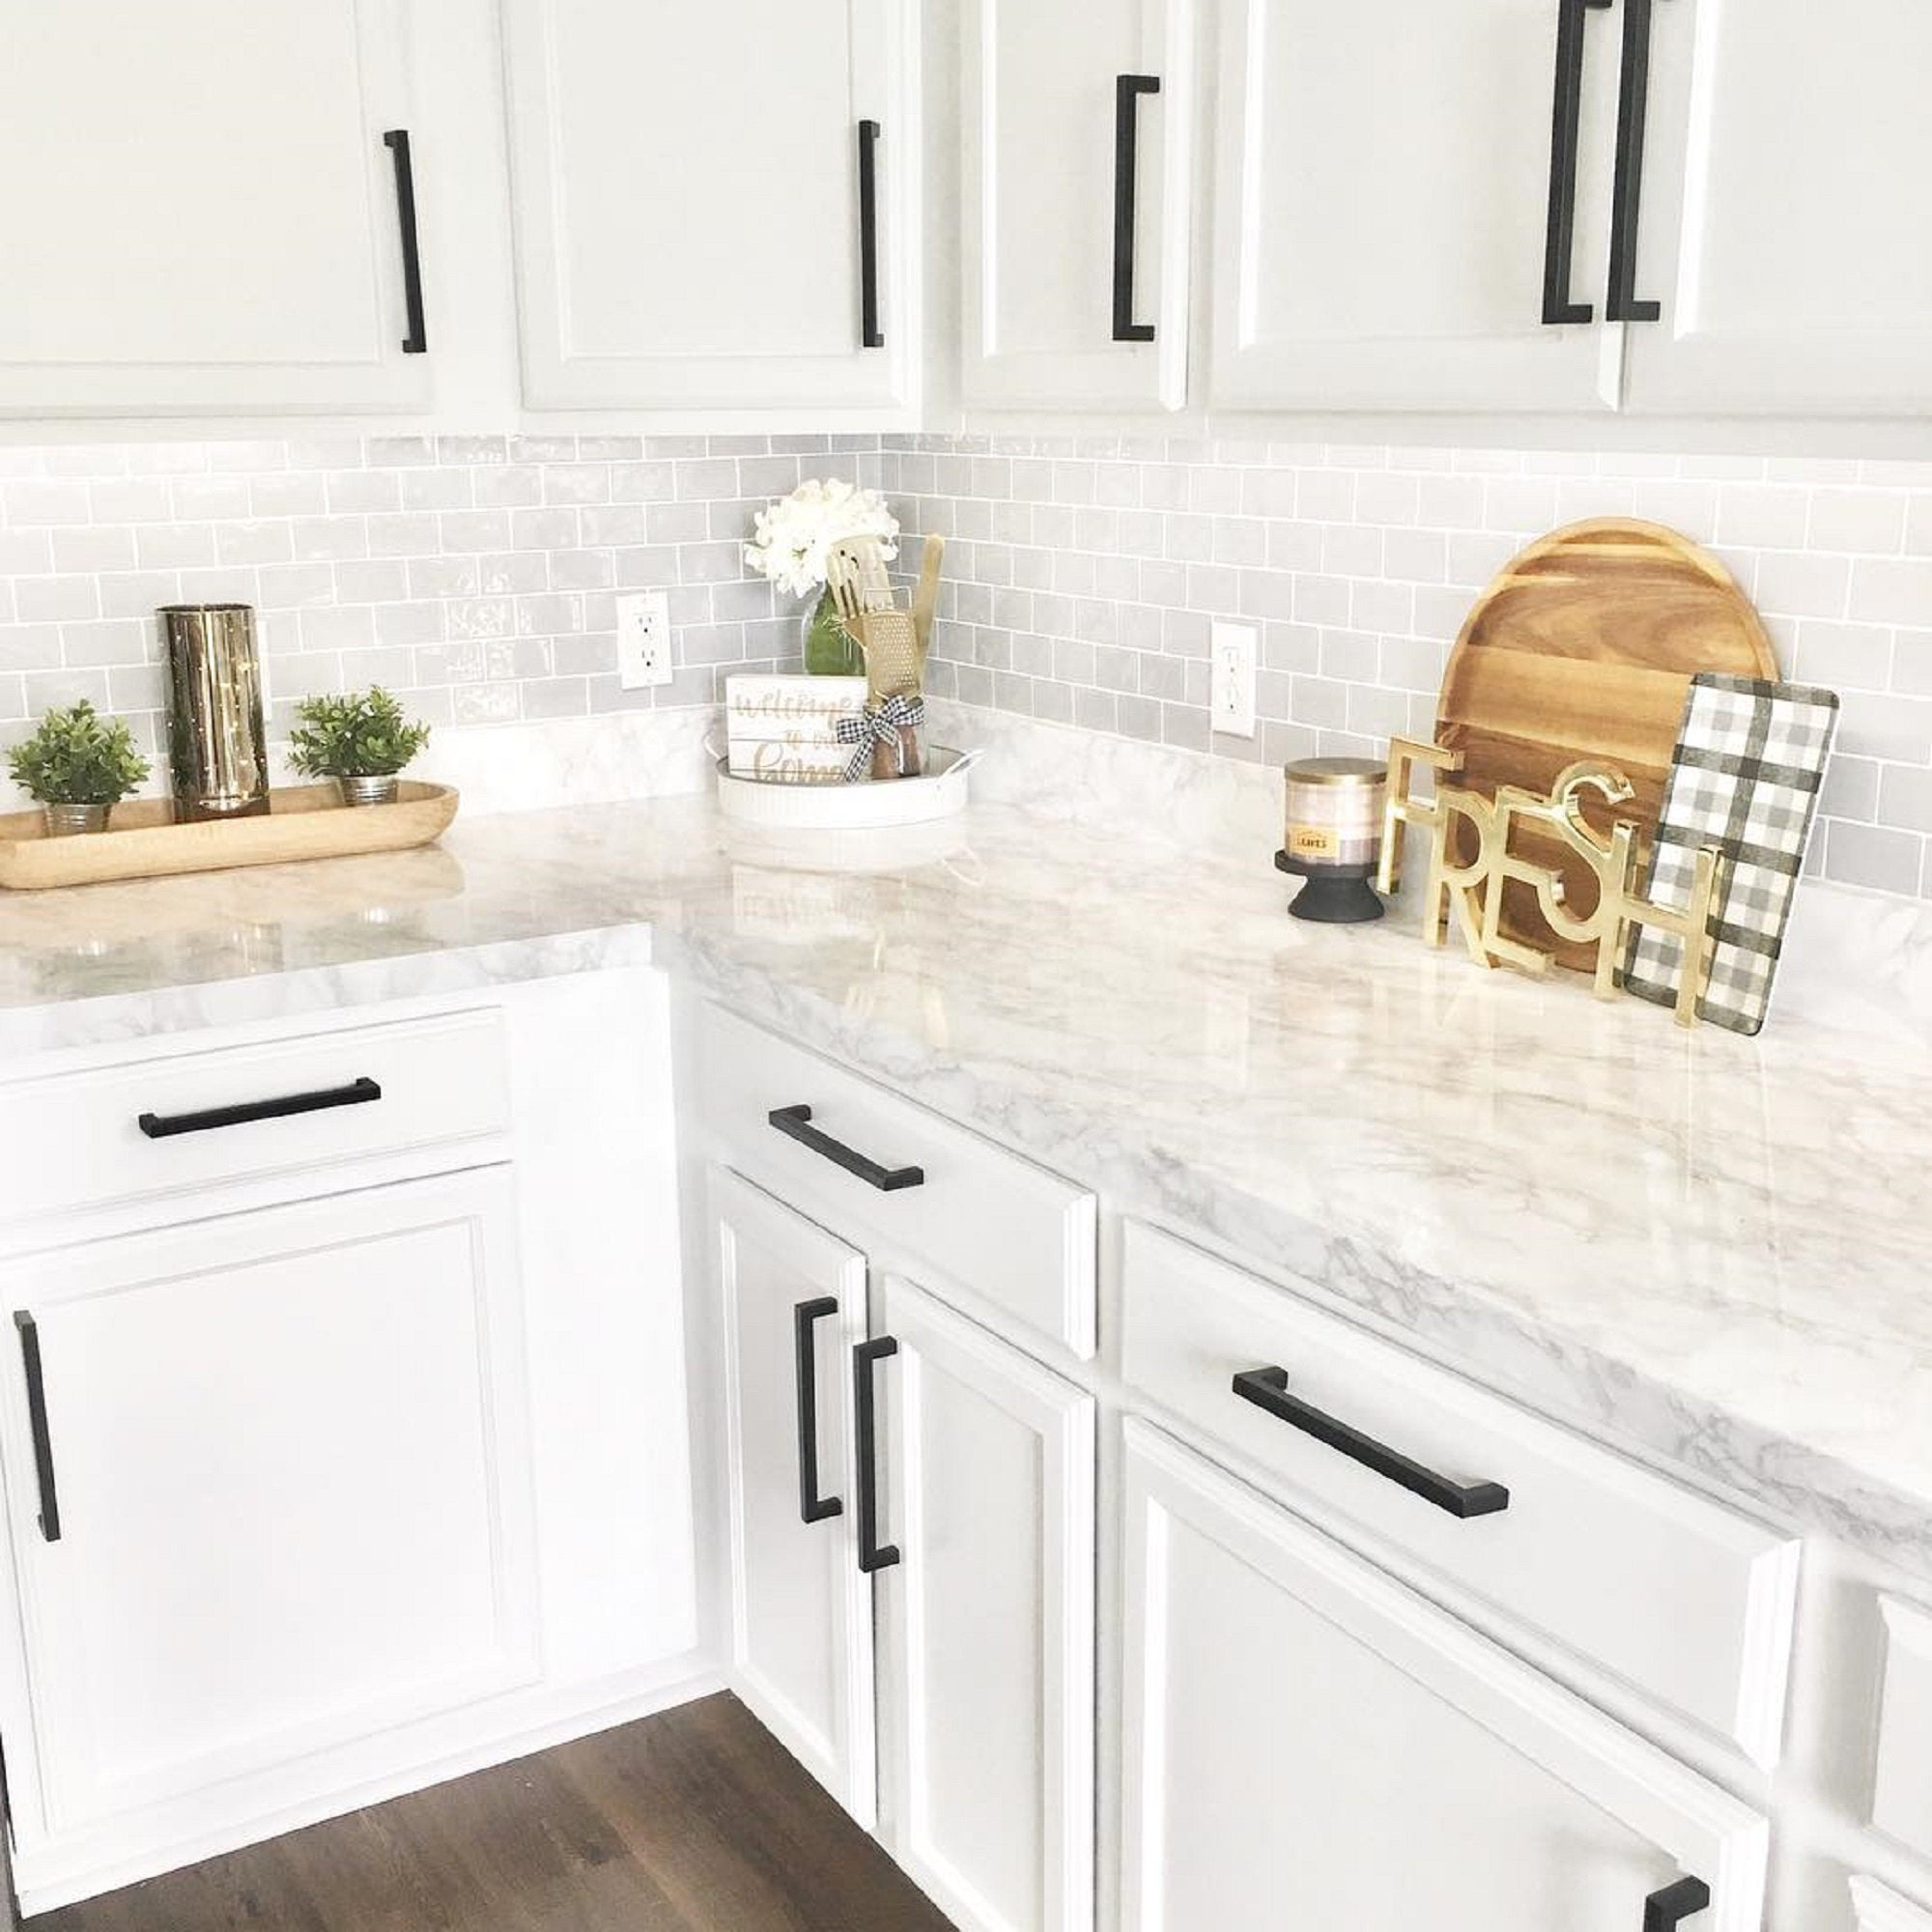 Ez Faux Decor Self Adhesive Decorative Peel and Stick Countertops Marble Contact Paper Countertop NO Paint!!